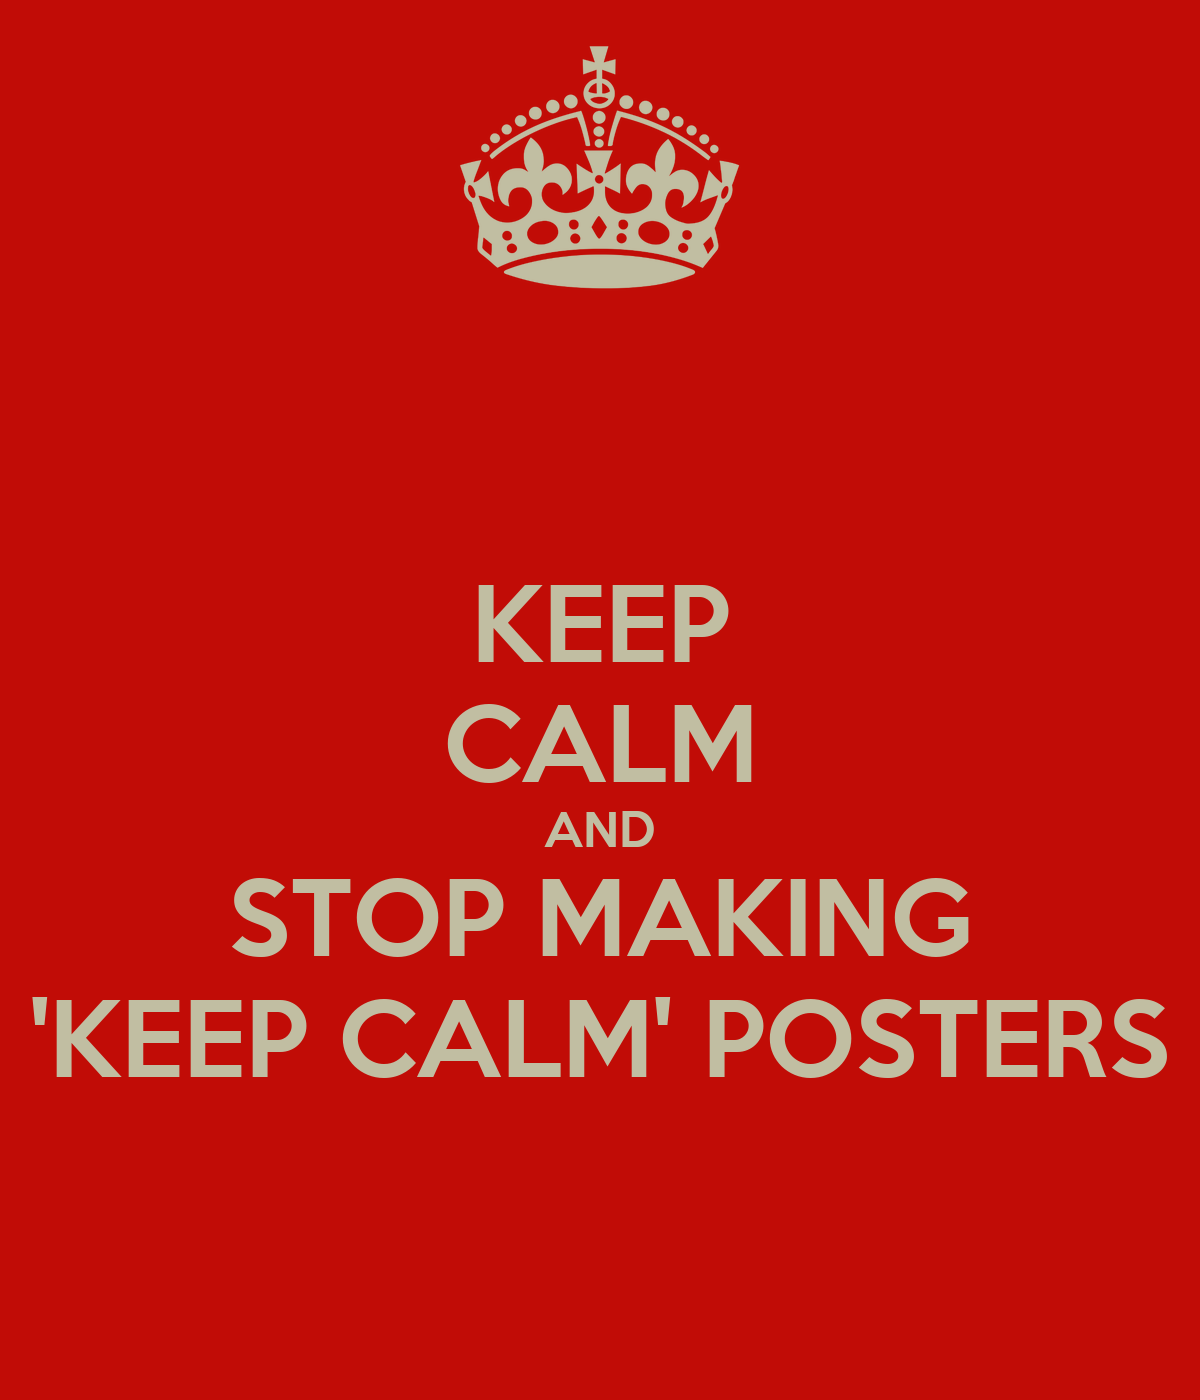 KEEP CALM AND STOP MAKING 'KEEP CALM' POSTERS Poster ...